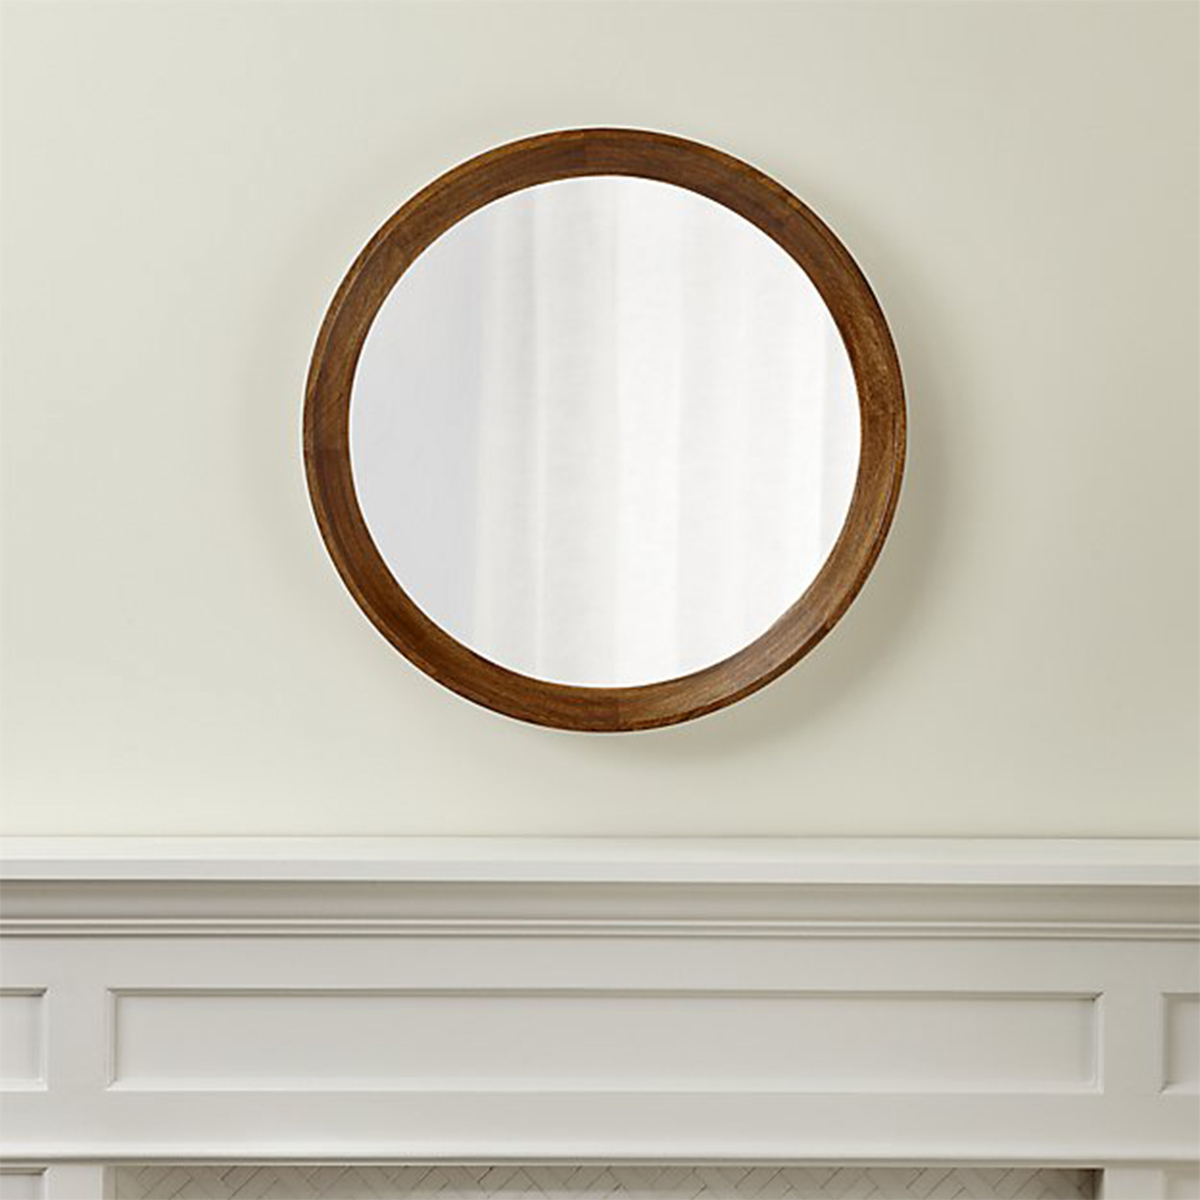 Circular mirror made of mango wood from Crate and Barrel hanging above a mantle. photo